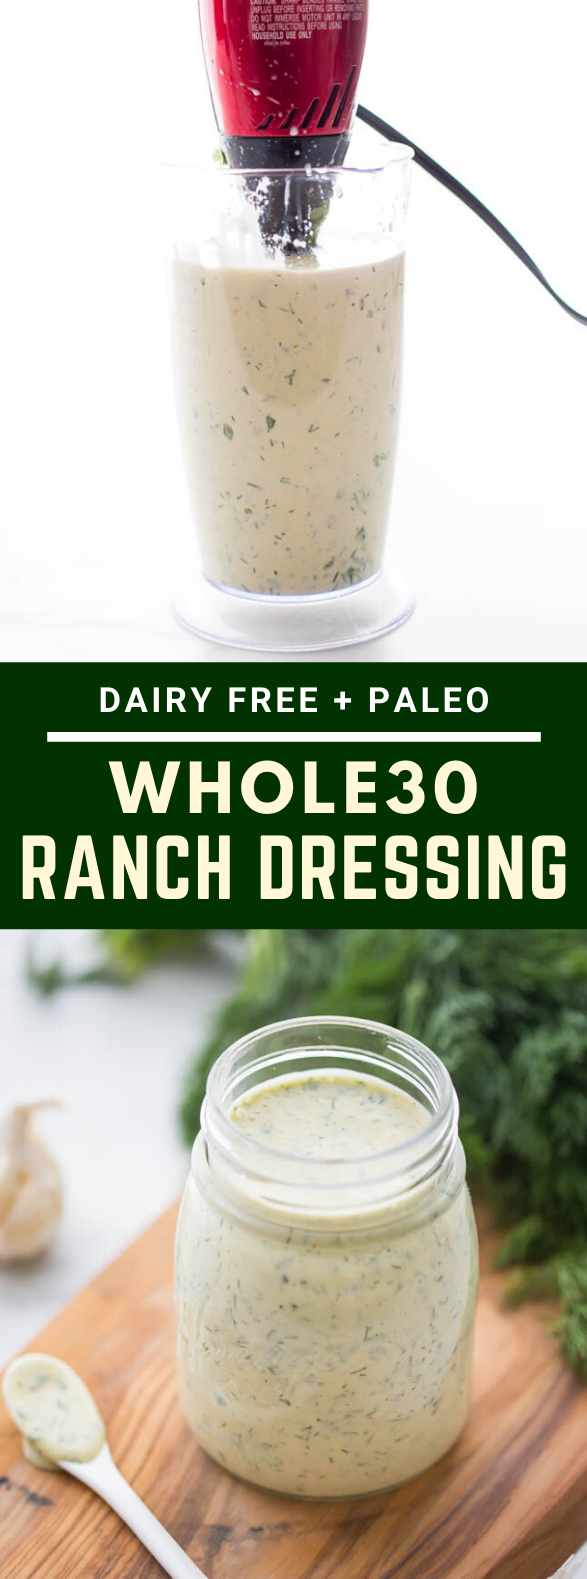 "Whole30 Ranch Dressing (""Dump Ranch,"" Paleo, Dairy-Free) #healthy #diet"